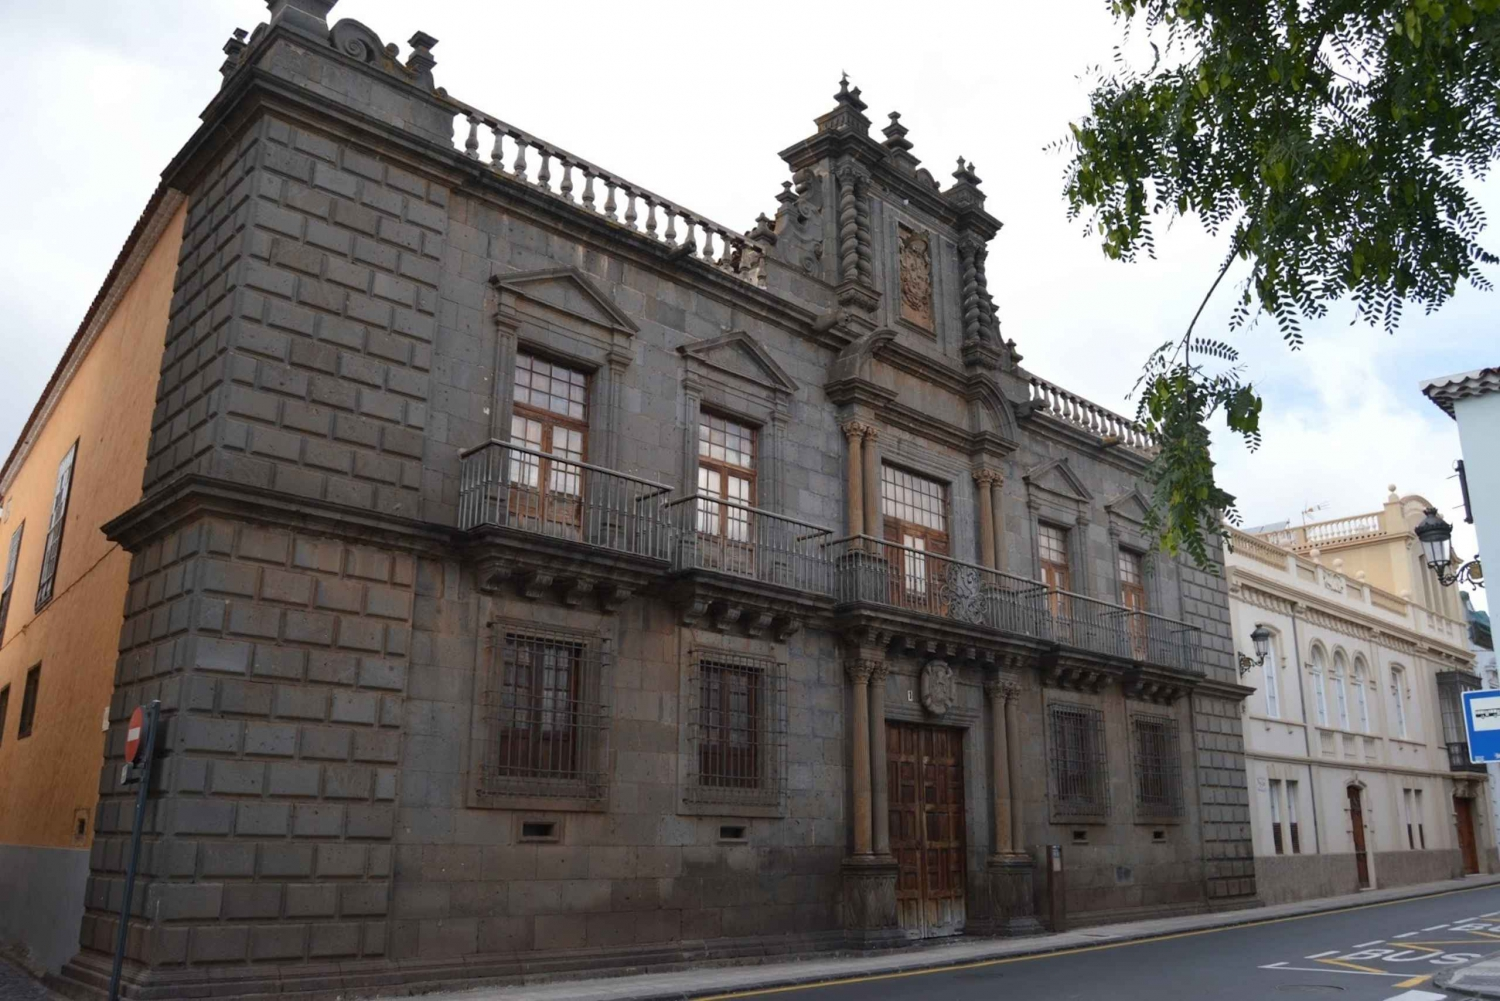 From Santa Cruz: La Laguna Walking Tour